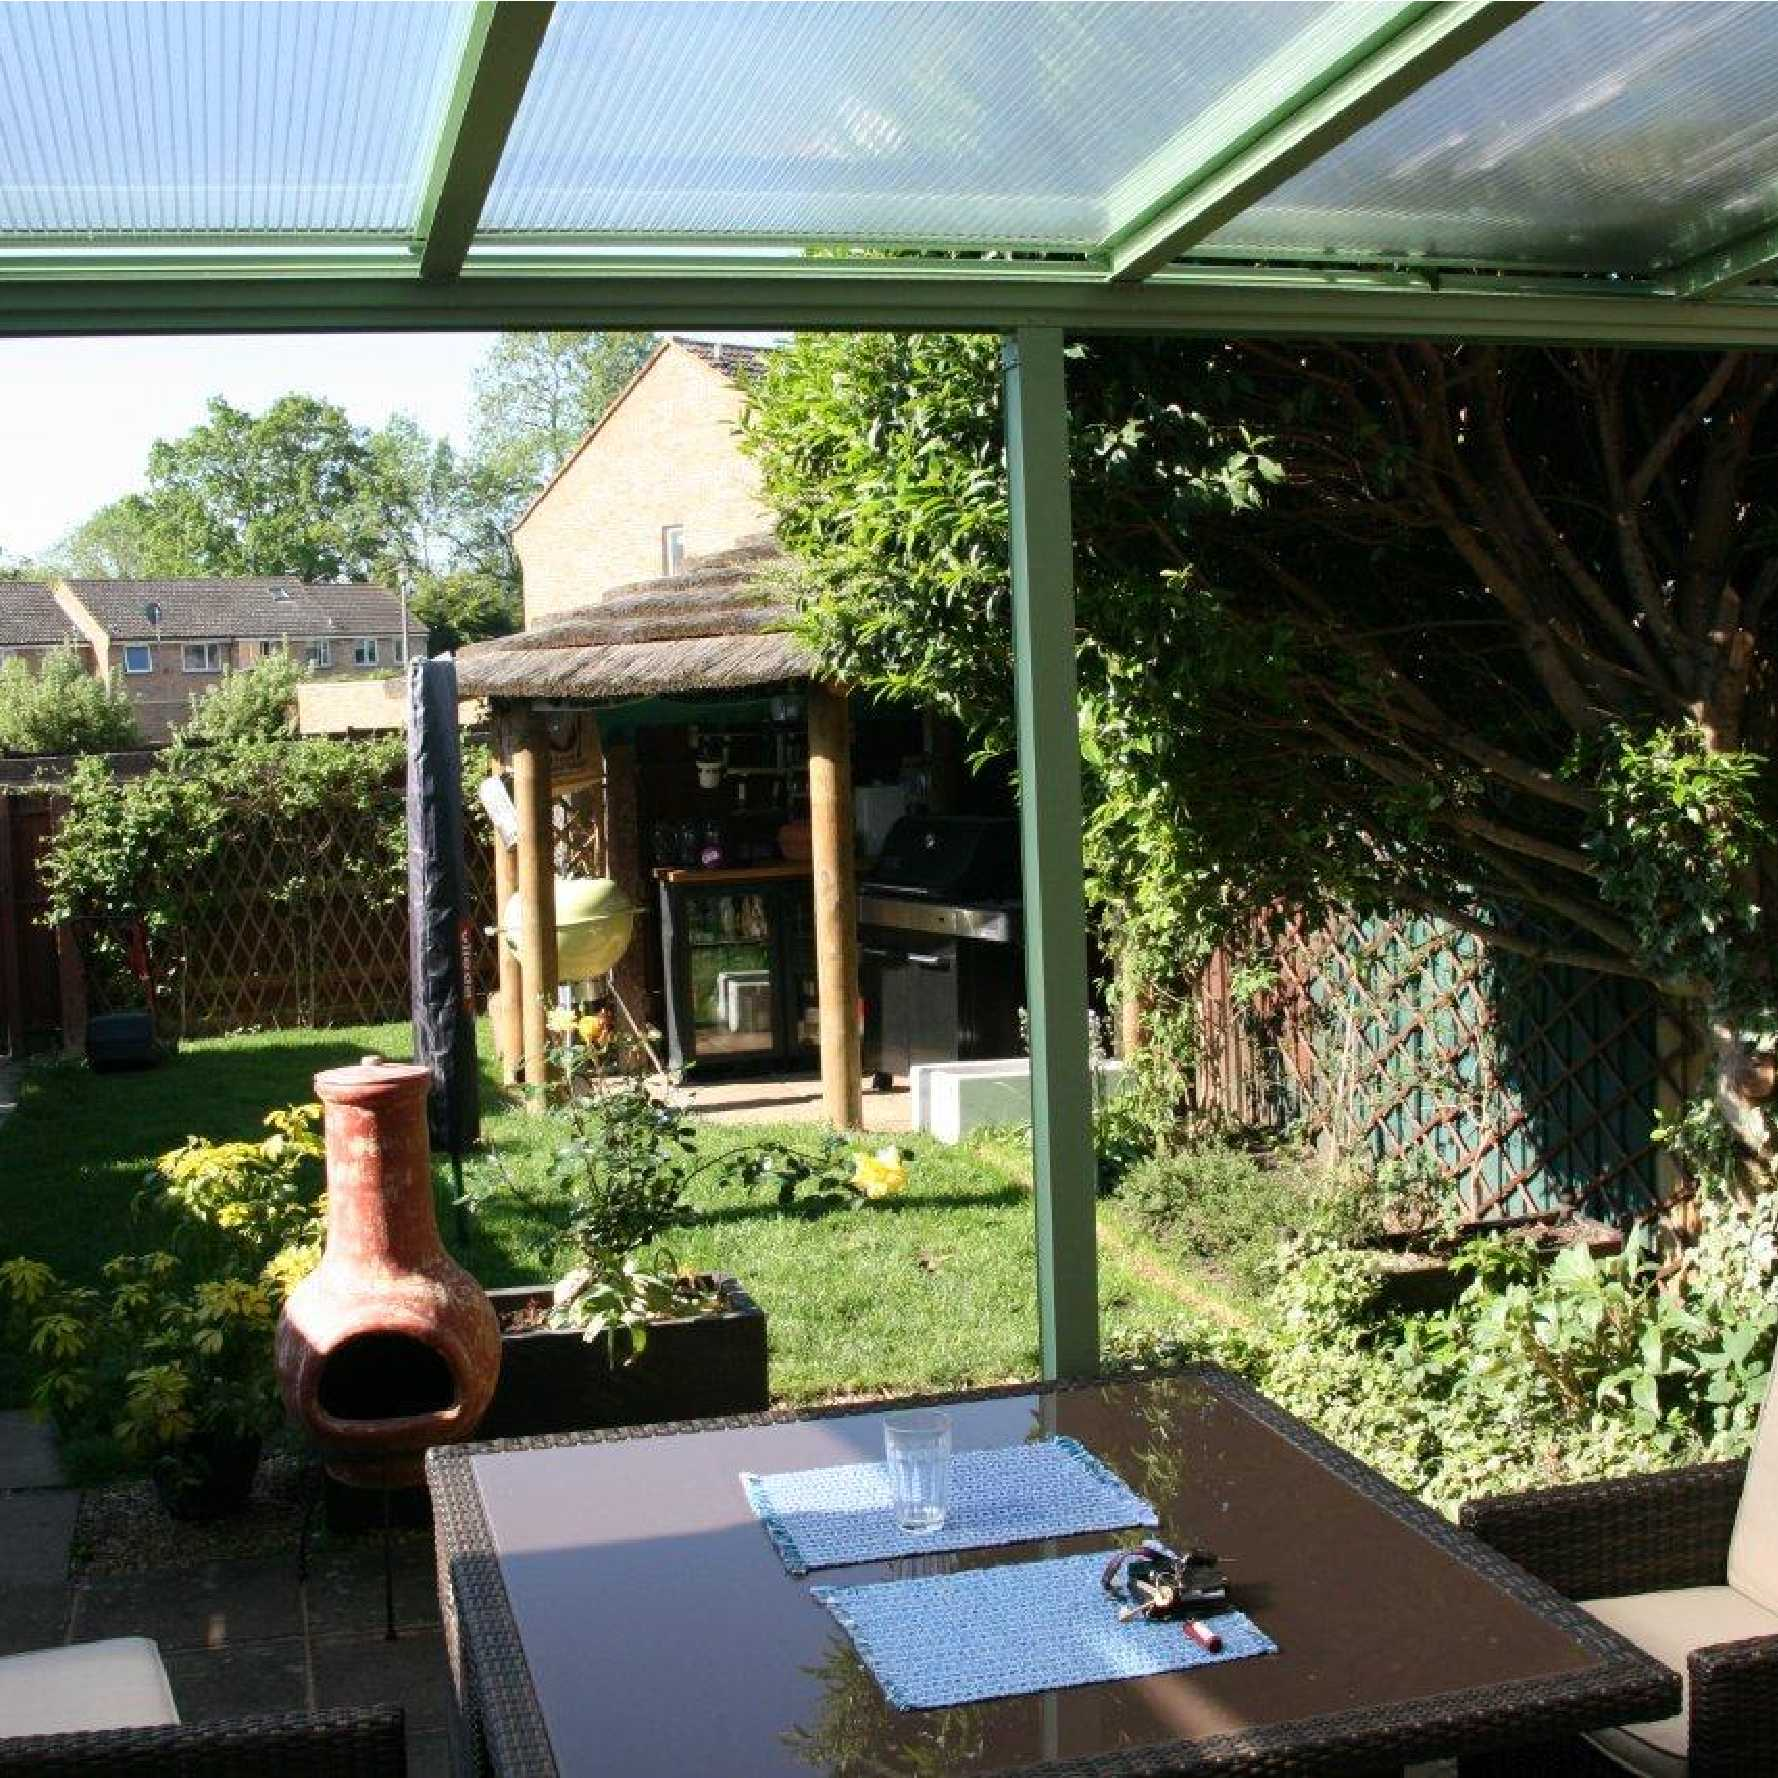 Affordable Omega Smart Lean-To Canopy with 16mm Polycarbonate Glazing - 3.5m (W) x 4.0m (P), (3) Supporting Posts